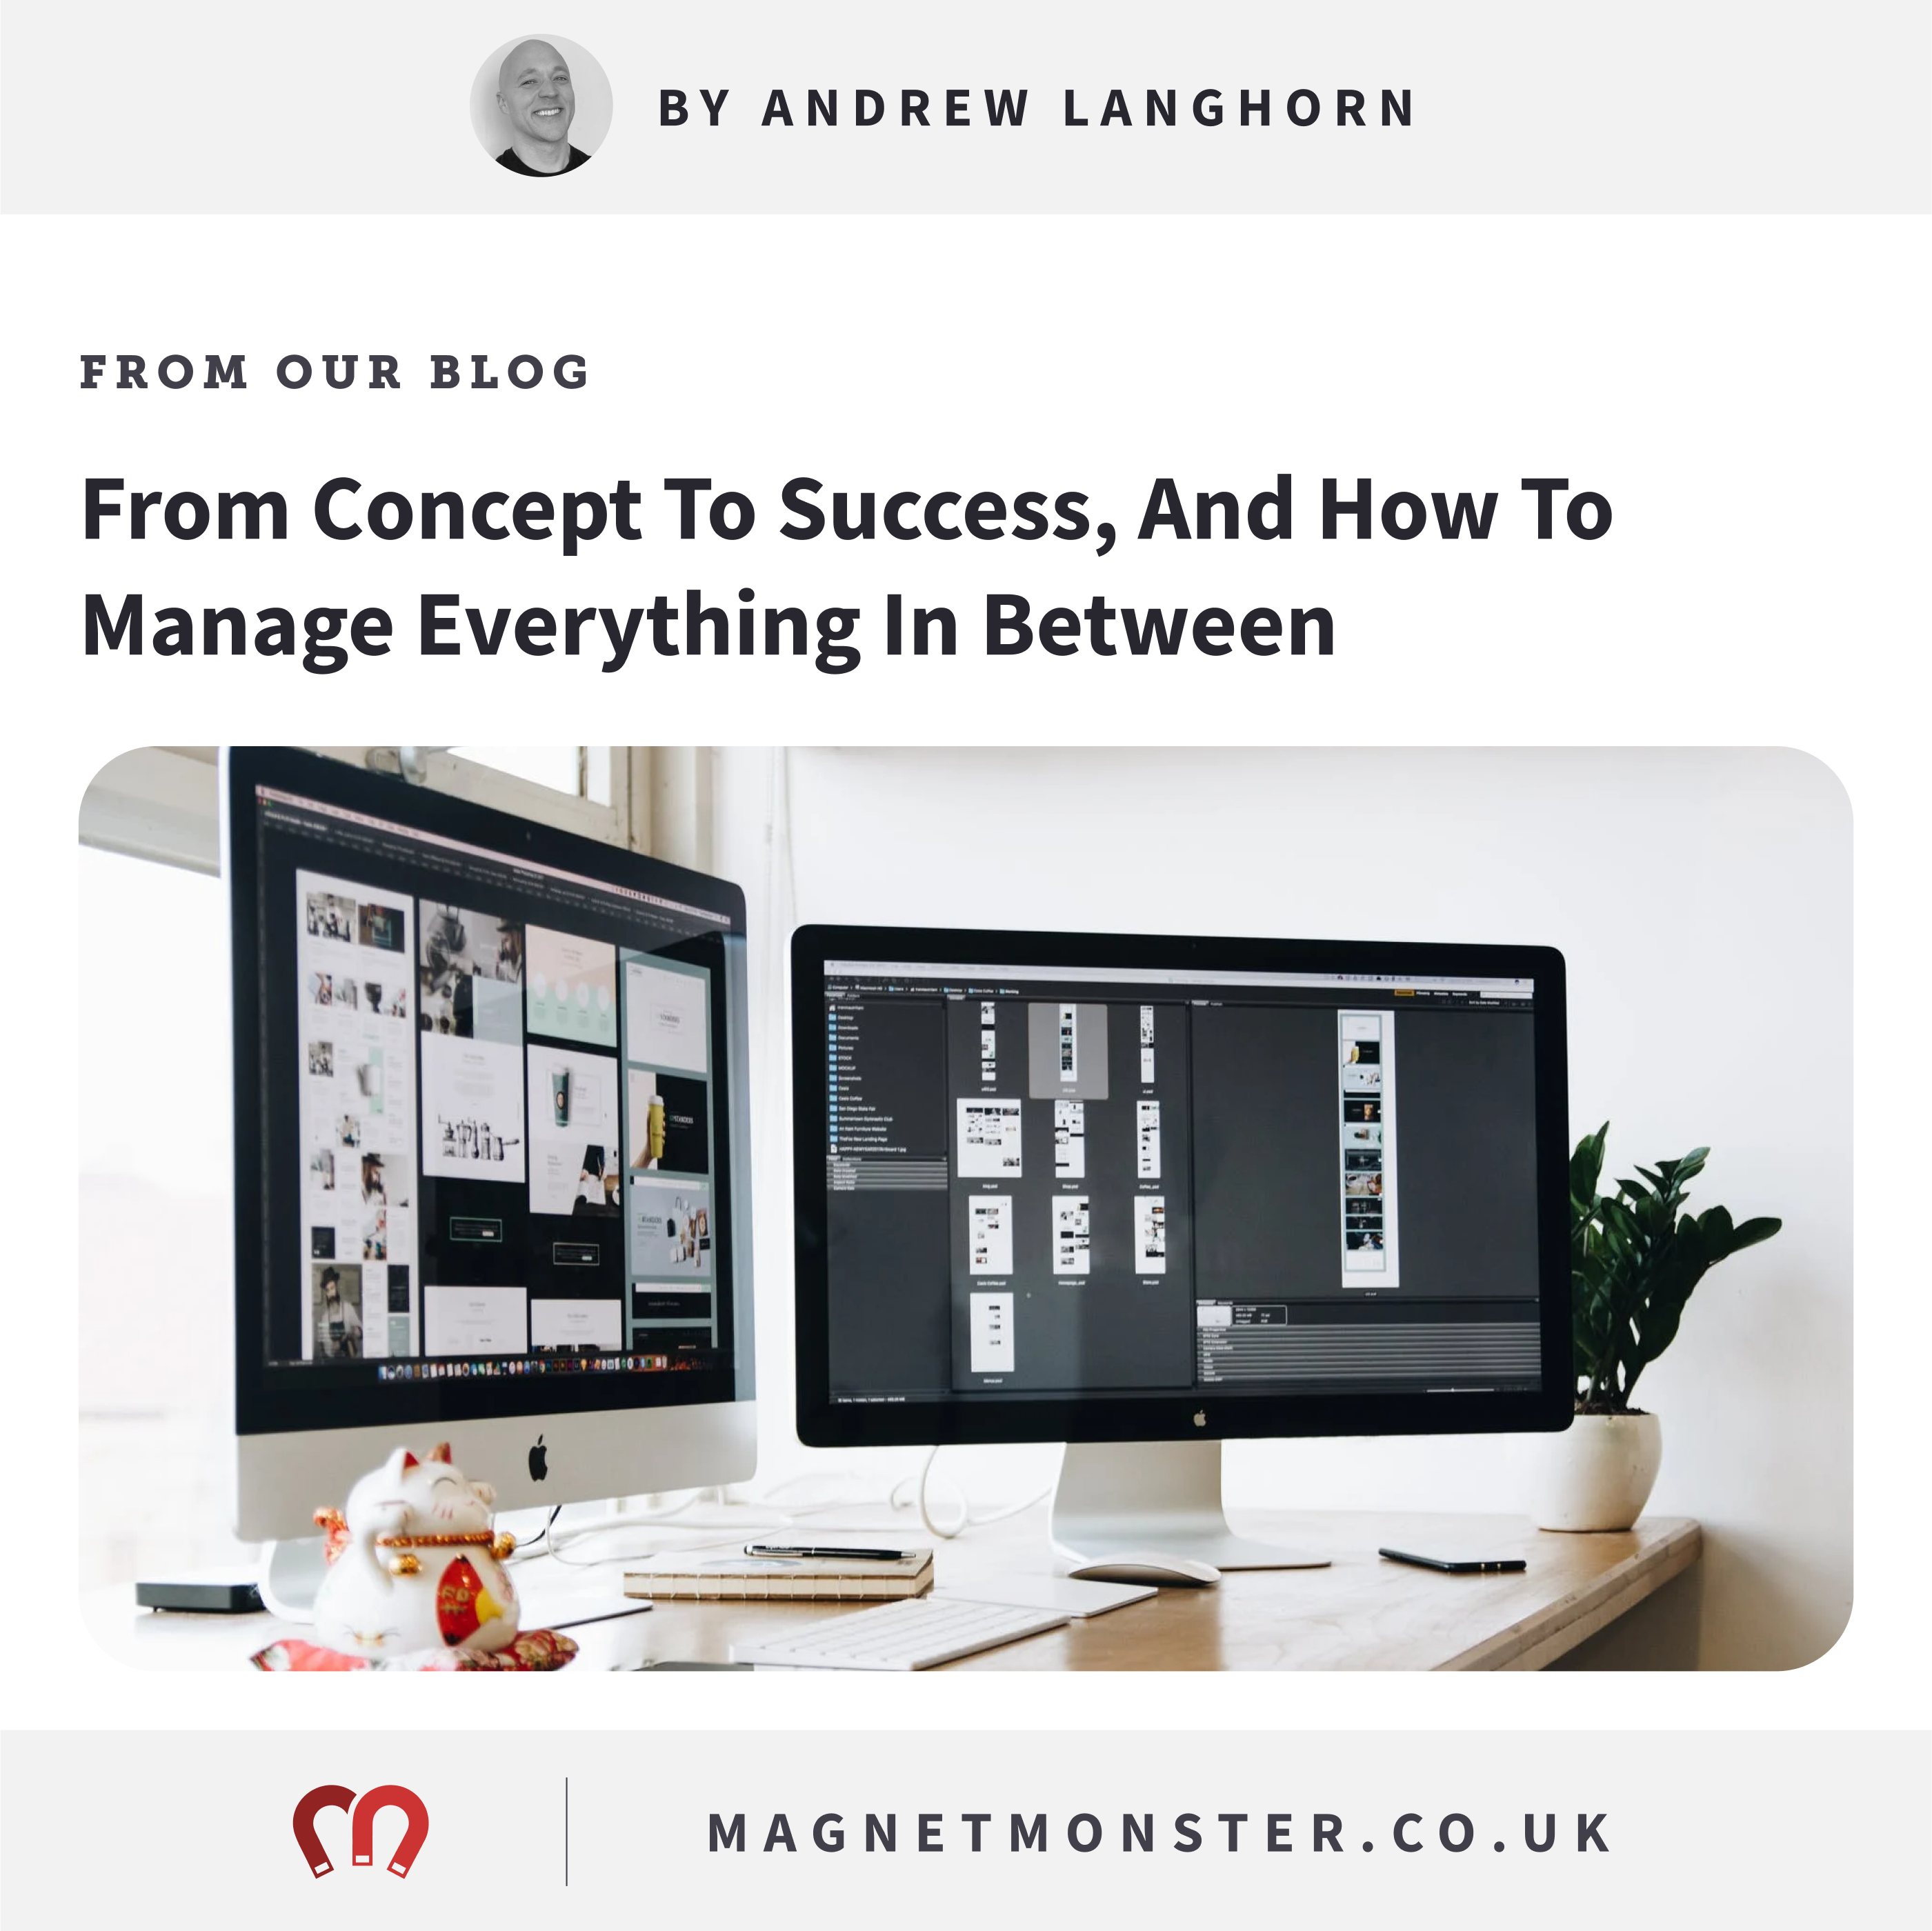 From Concept To Success, And How To Manage Everything In Between